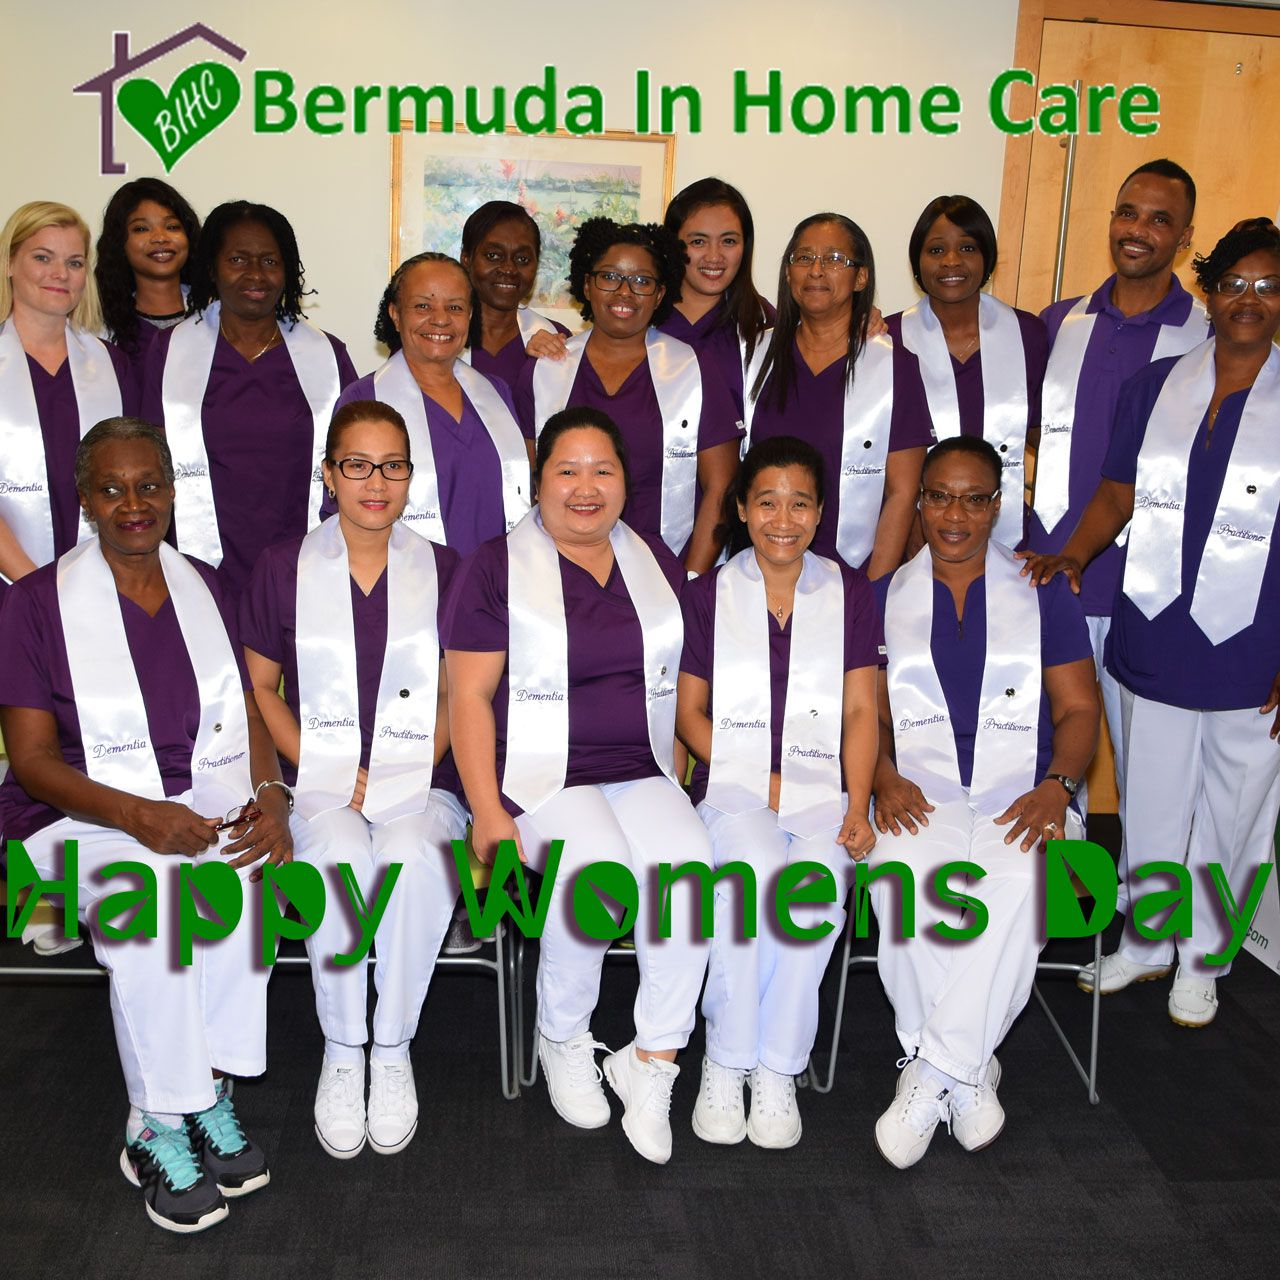 Bermuda in home care team of certified caregivers wishes